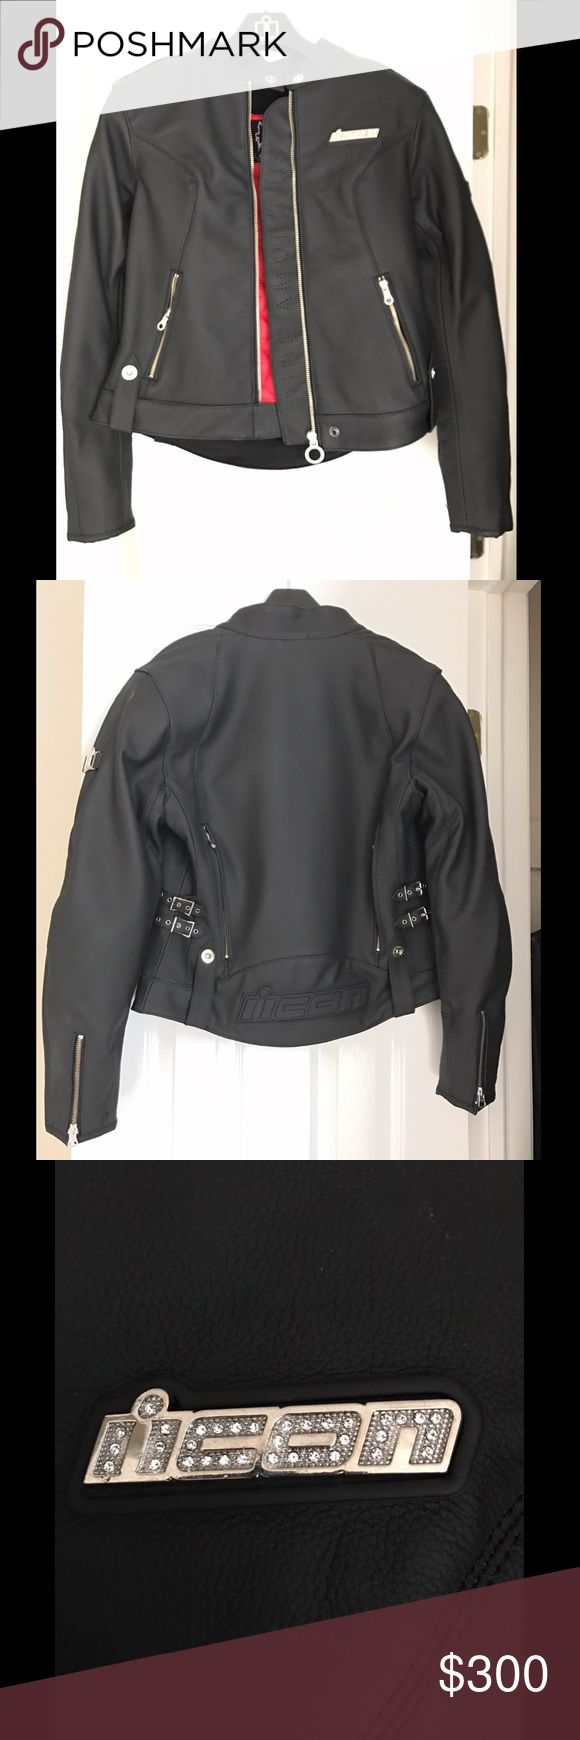 Women's Leather Icon Hella Motorcycle Jacket This women's Icon leather Hella motorcycle jacket is BRAND NEW. I've only ever worn it in my house to try it on. I ripped off the tags, except for the one on the inside stash pocket, but I never actually got to use the jacket. The jacket has removable elbow and shoulder CE field armor, as well as a removable dual-density foam back pad.  It also has a removable liner and intake/exhaust vents for cooling. Buckles on the sides for adjustment. This is…